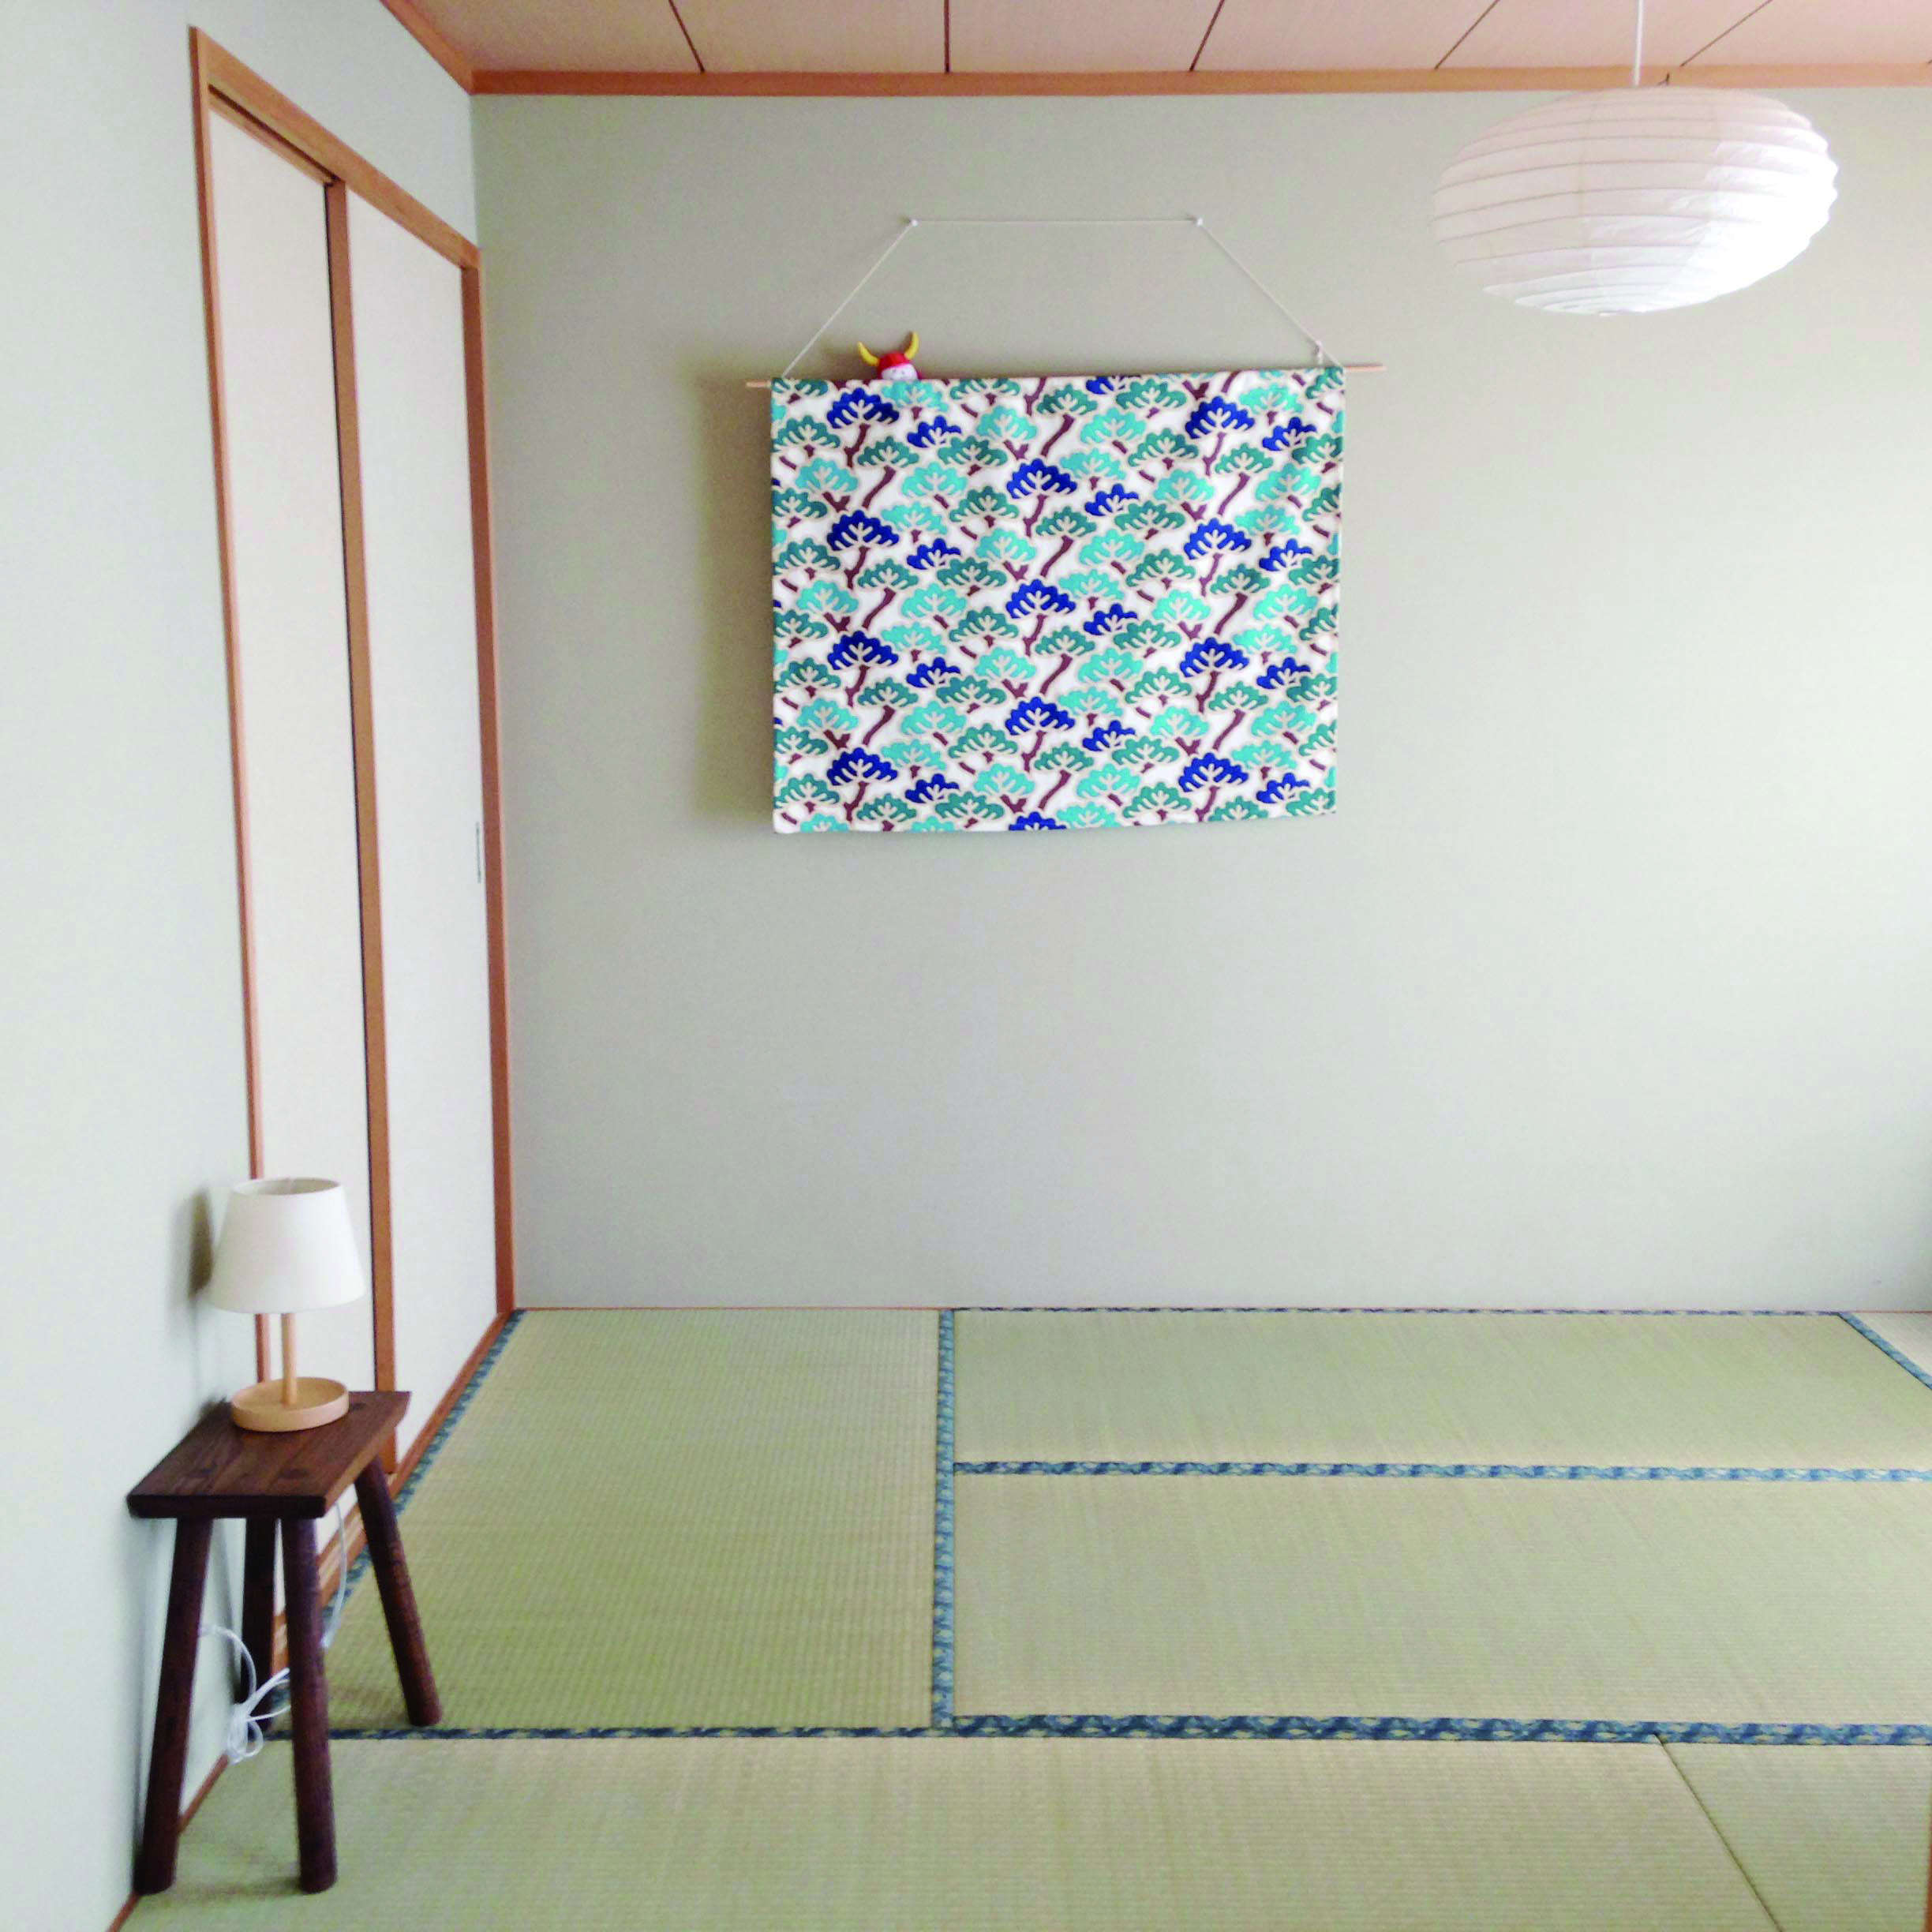 Goodbye Things Minimalism Book Room with Tatami Mats